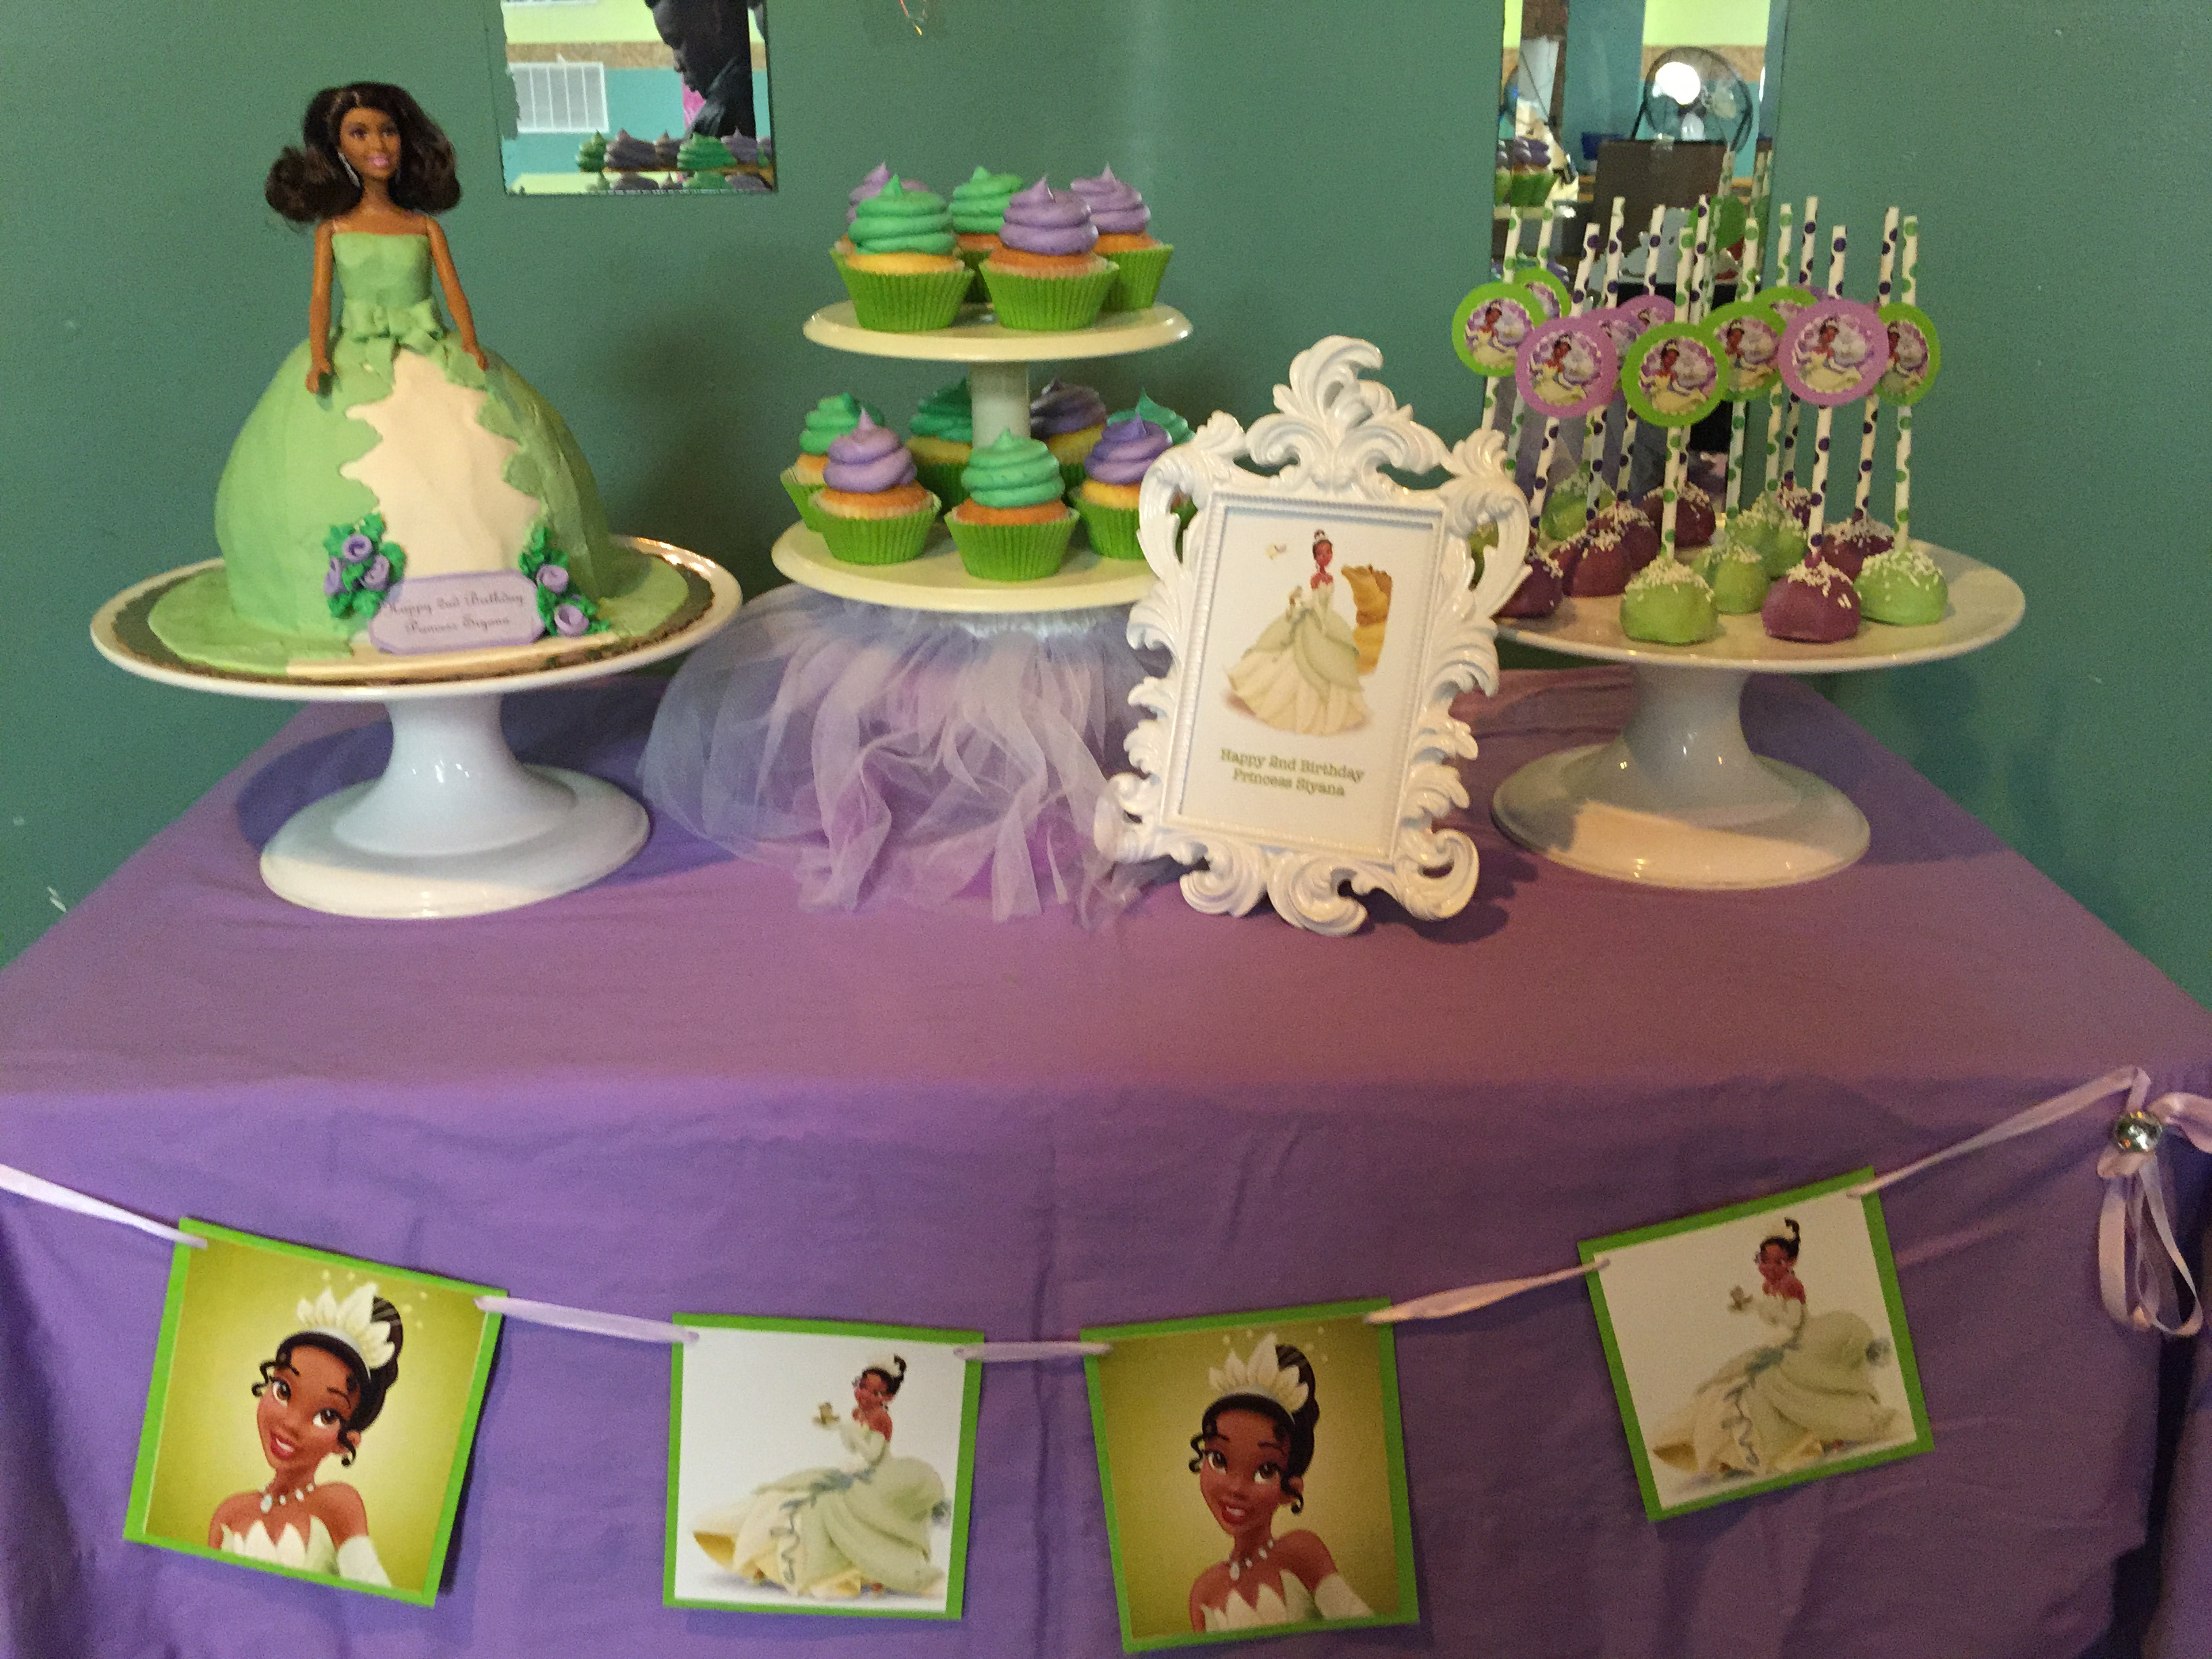 Princess And The Frog Dessert Table